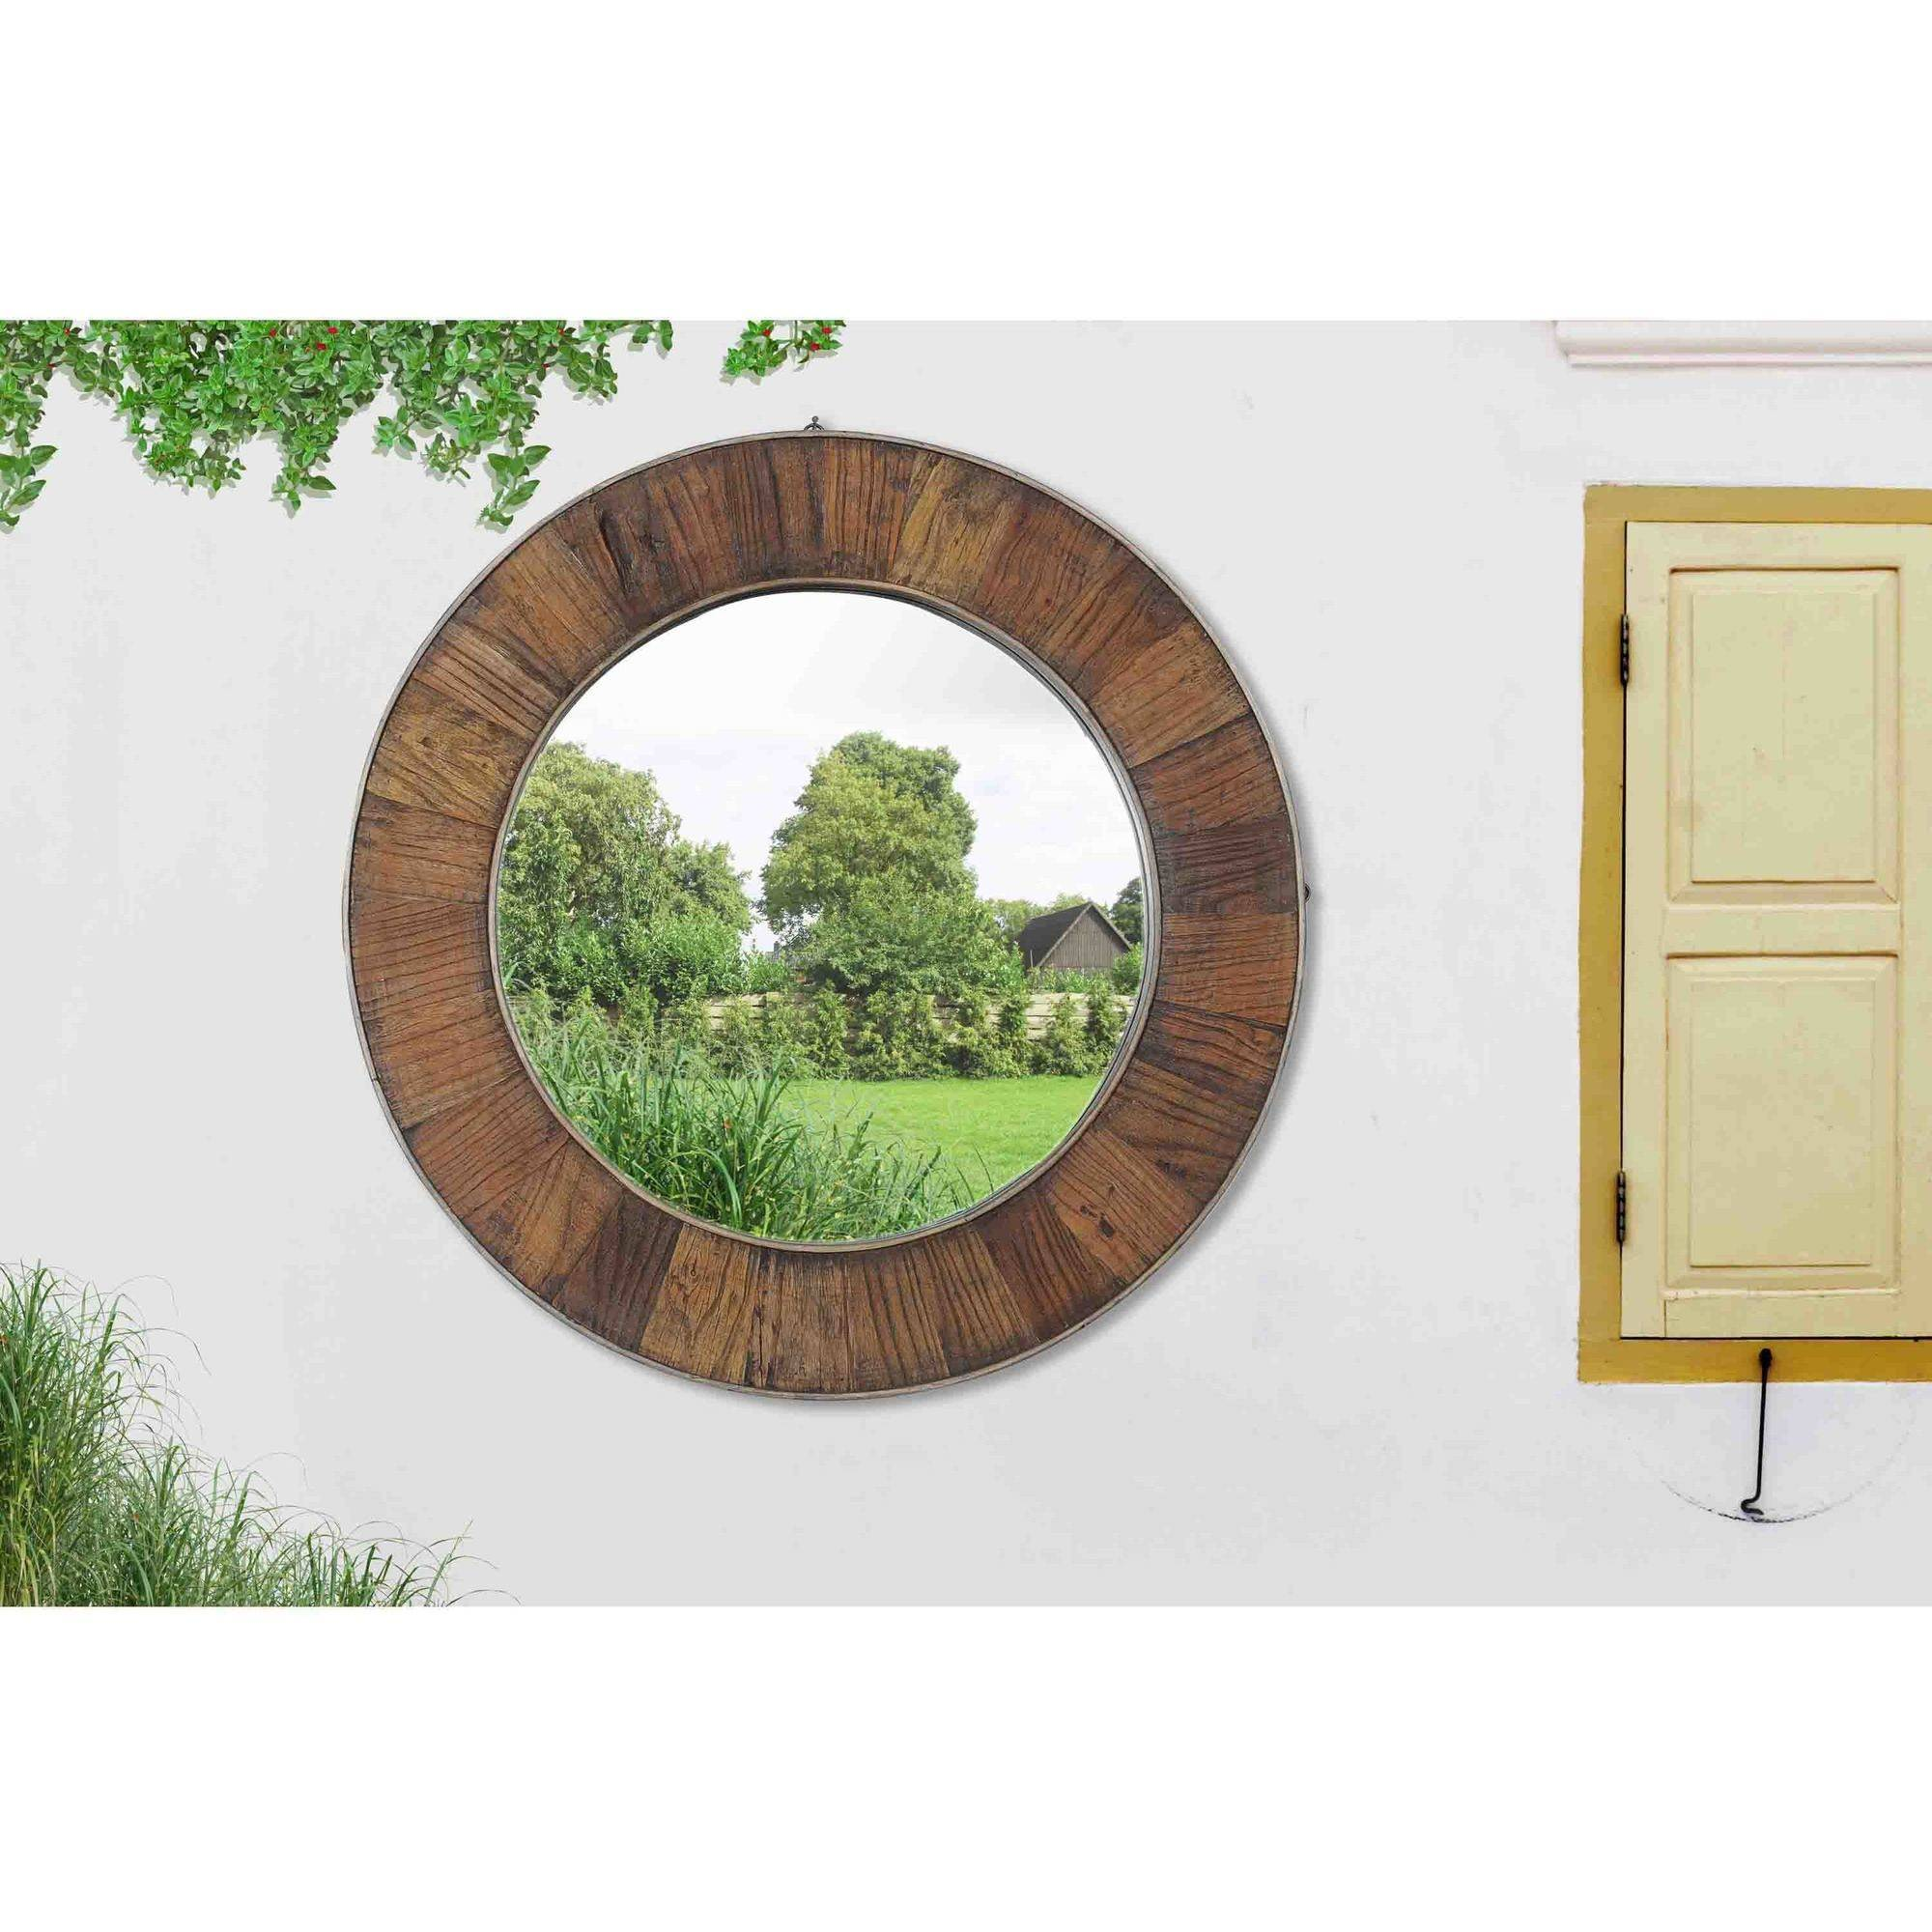 "Sunjoy 130201005 27"" Recycled Fir Wood Wide Border Round Mirror by SunNest Services LLC"